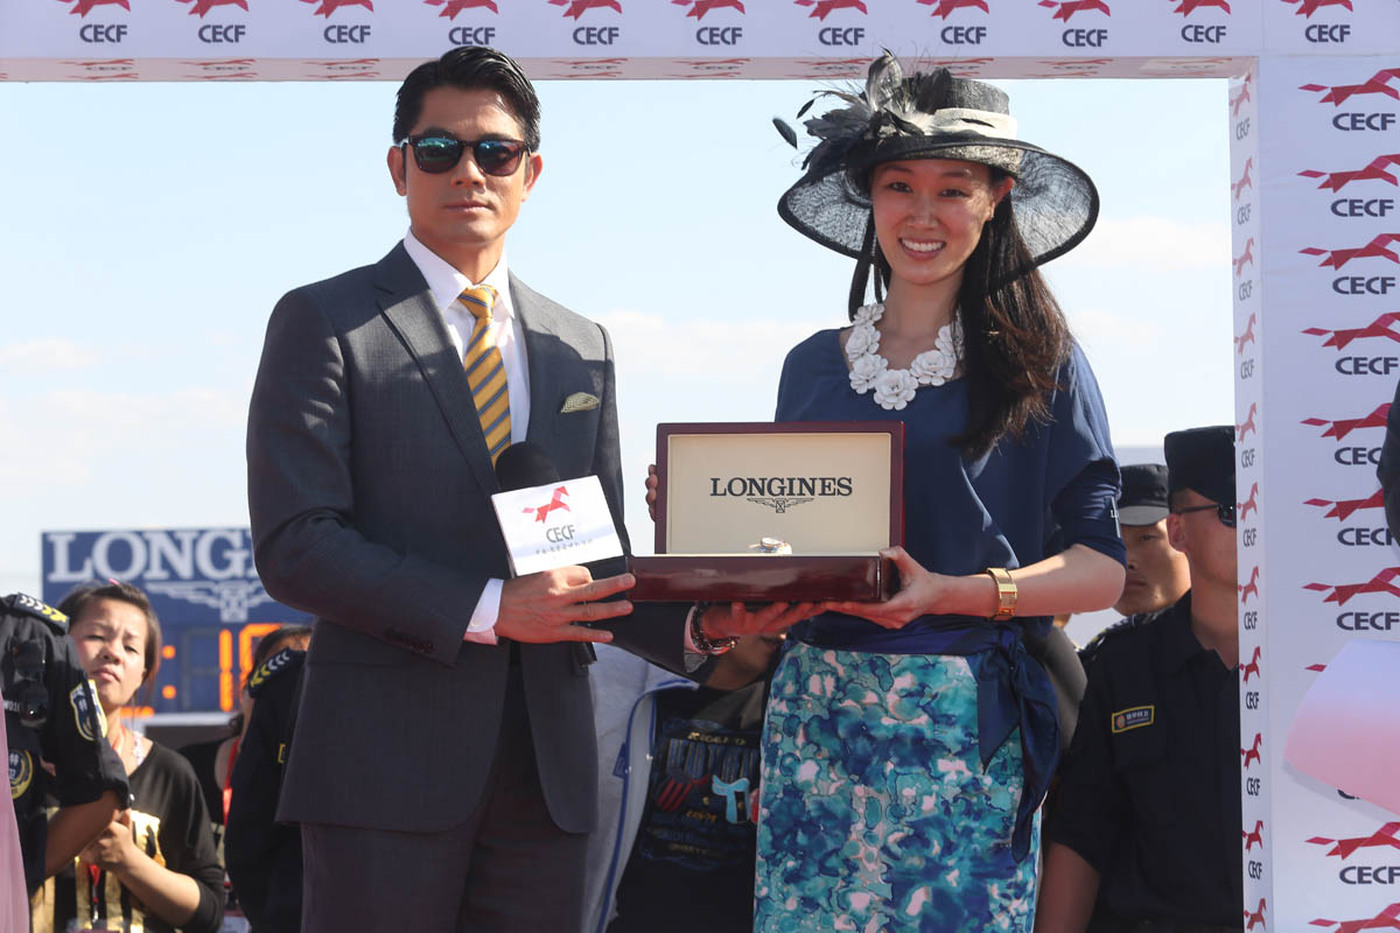 Longines Flat Racing Event: Longines at the China Equine Cultural Festival 5